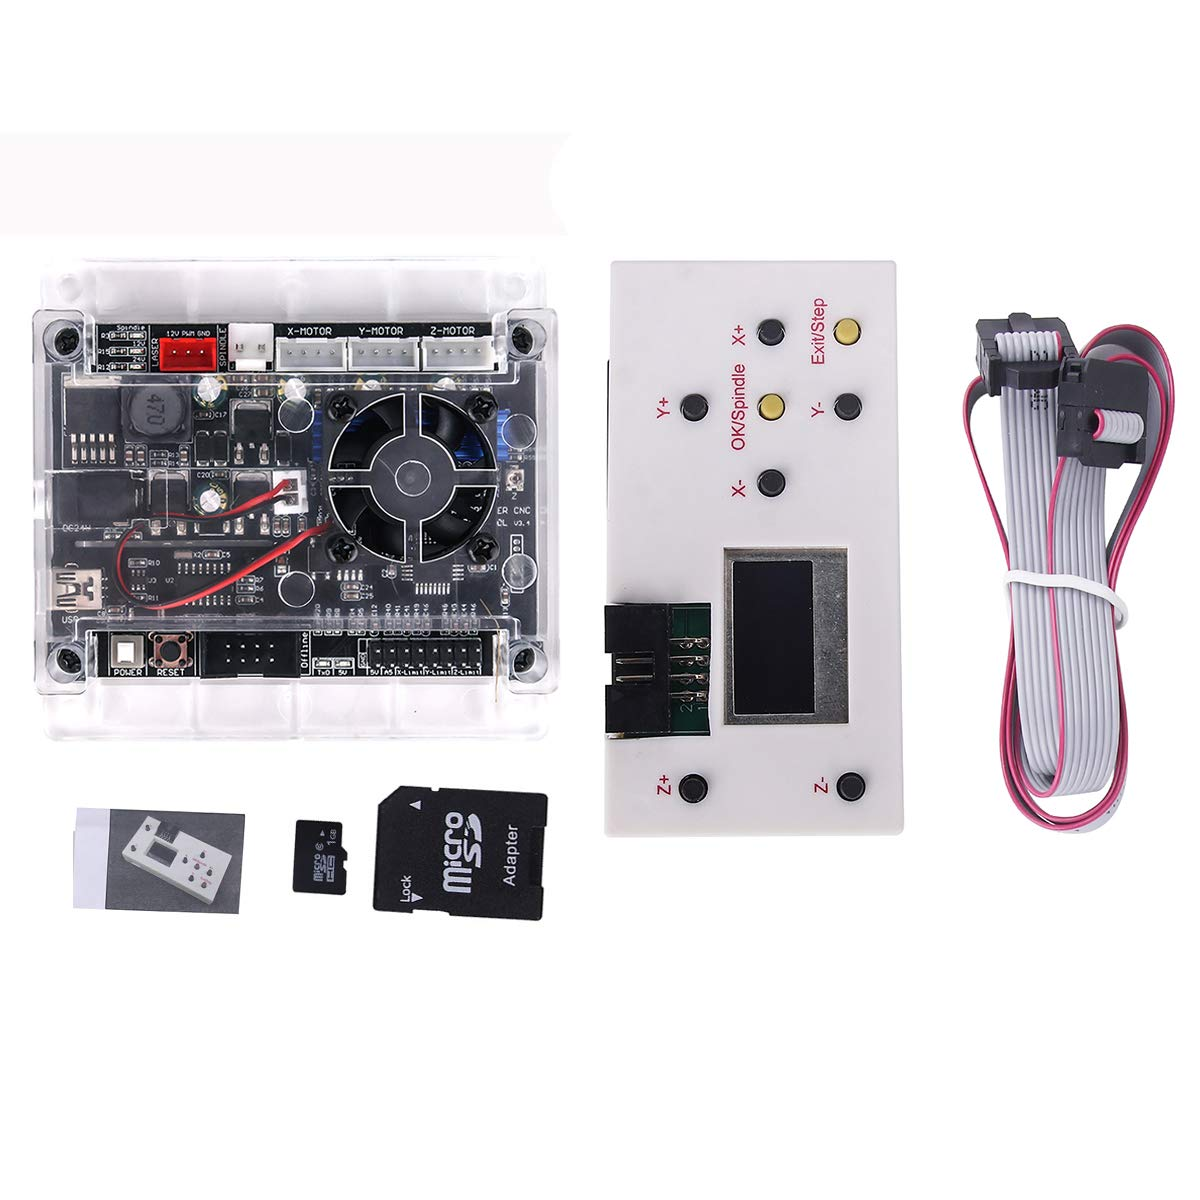 Upgraded 3 Axis Control Board GRBL 1.1f USB Port Remote Hand Control for CNC Engraving Machine Control Board for CNC Router Milling Mini DIY Engraving Machine CNC 1610/3018 PRO+Offline Control